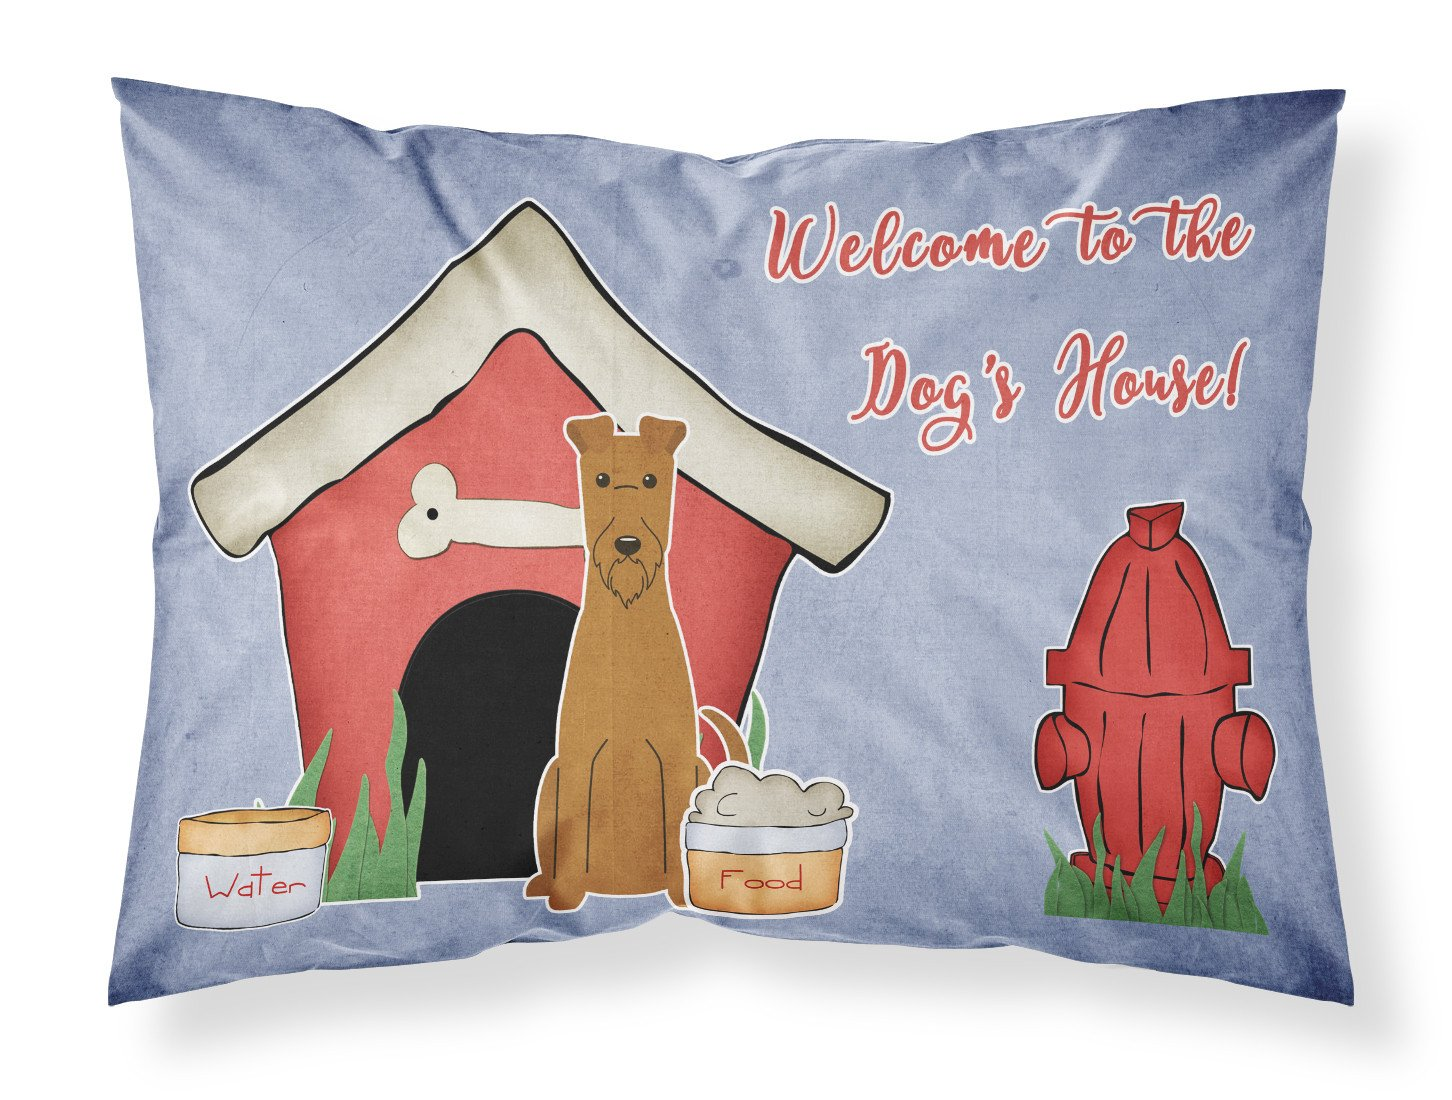 Dog House Collection Irish Terrier Fabric Standard Pillowcase BB2816PILLOWCASE by Caroline's Treasures